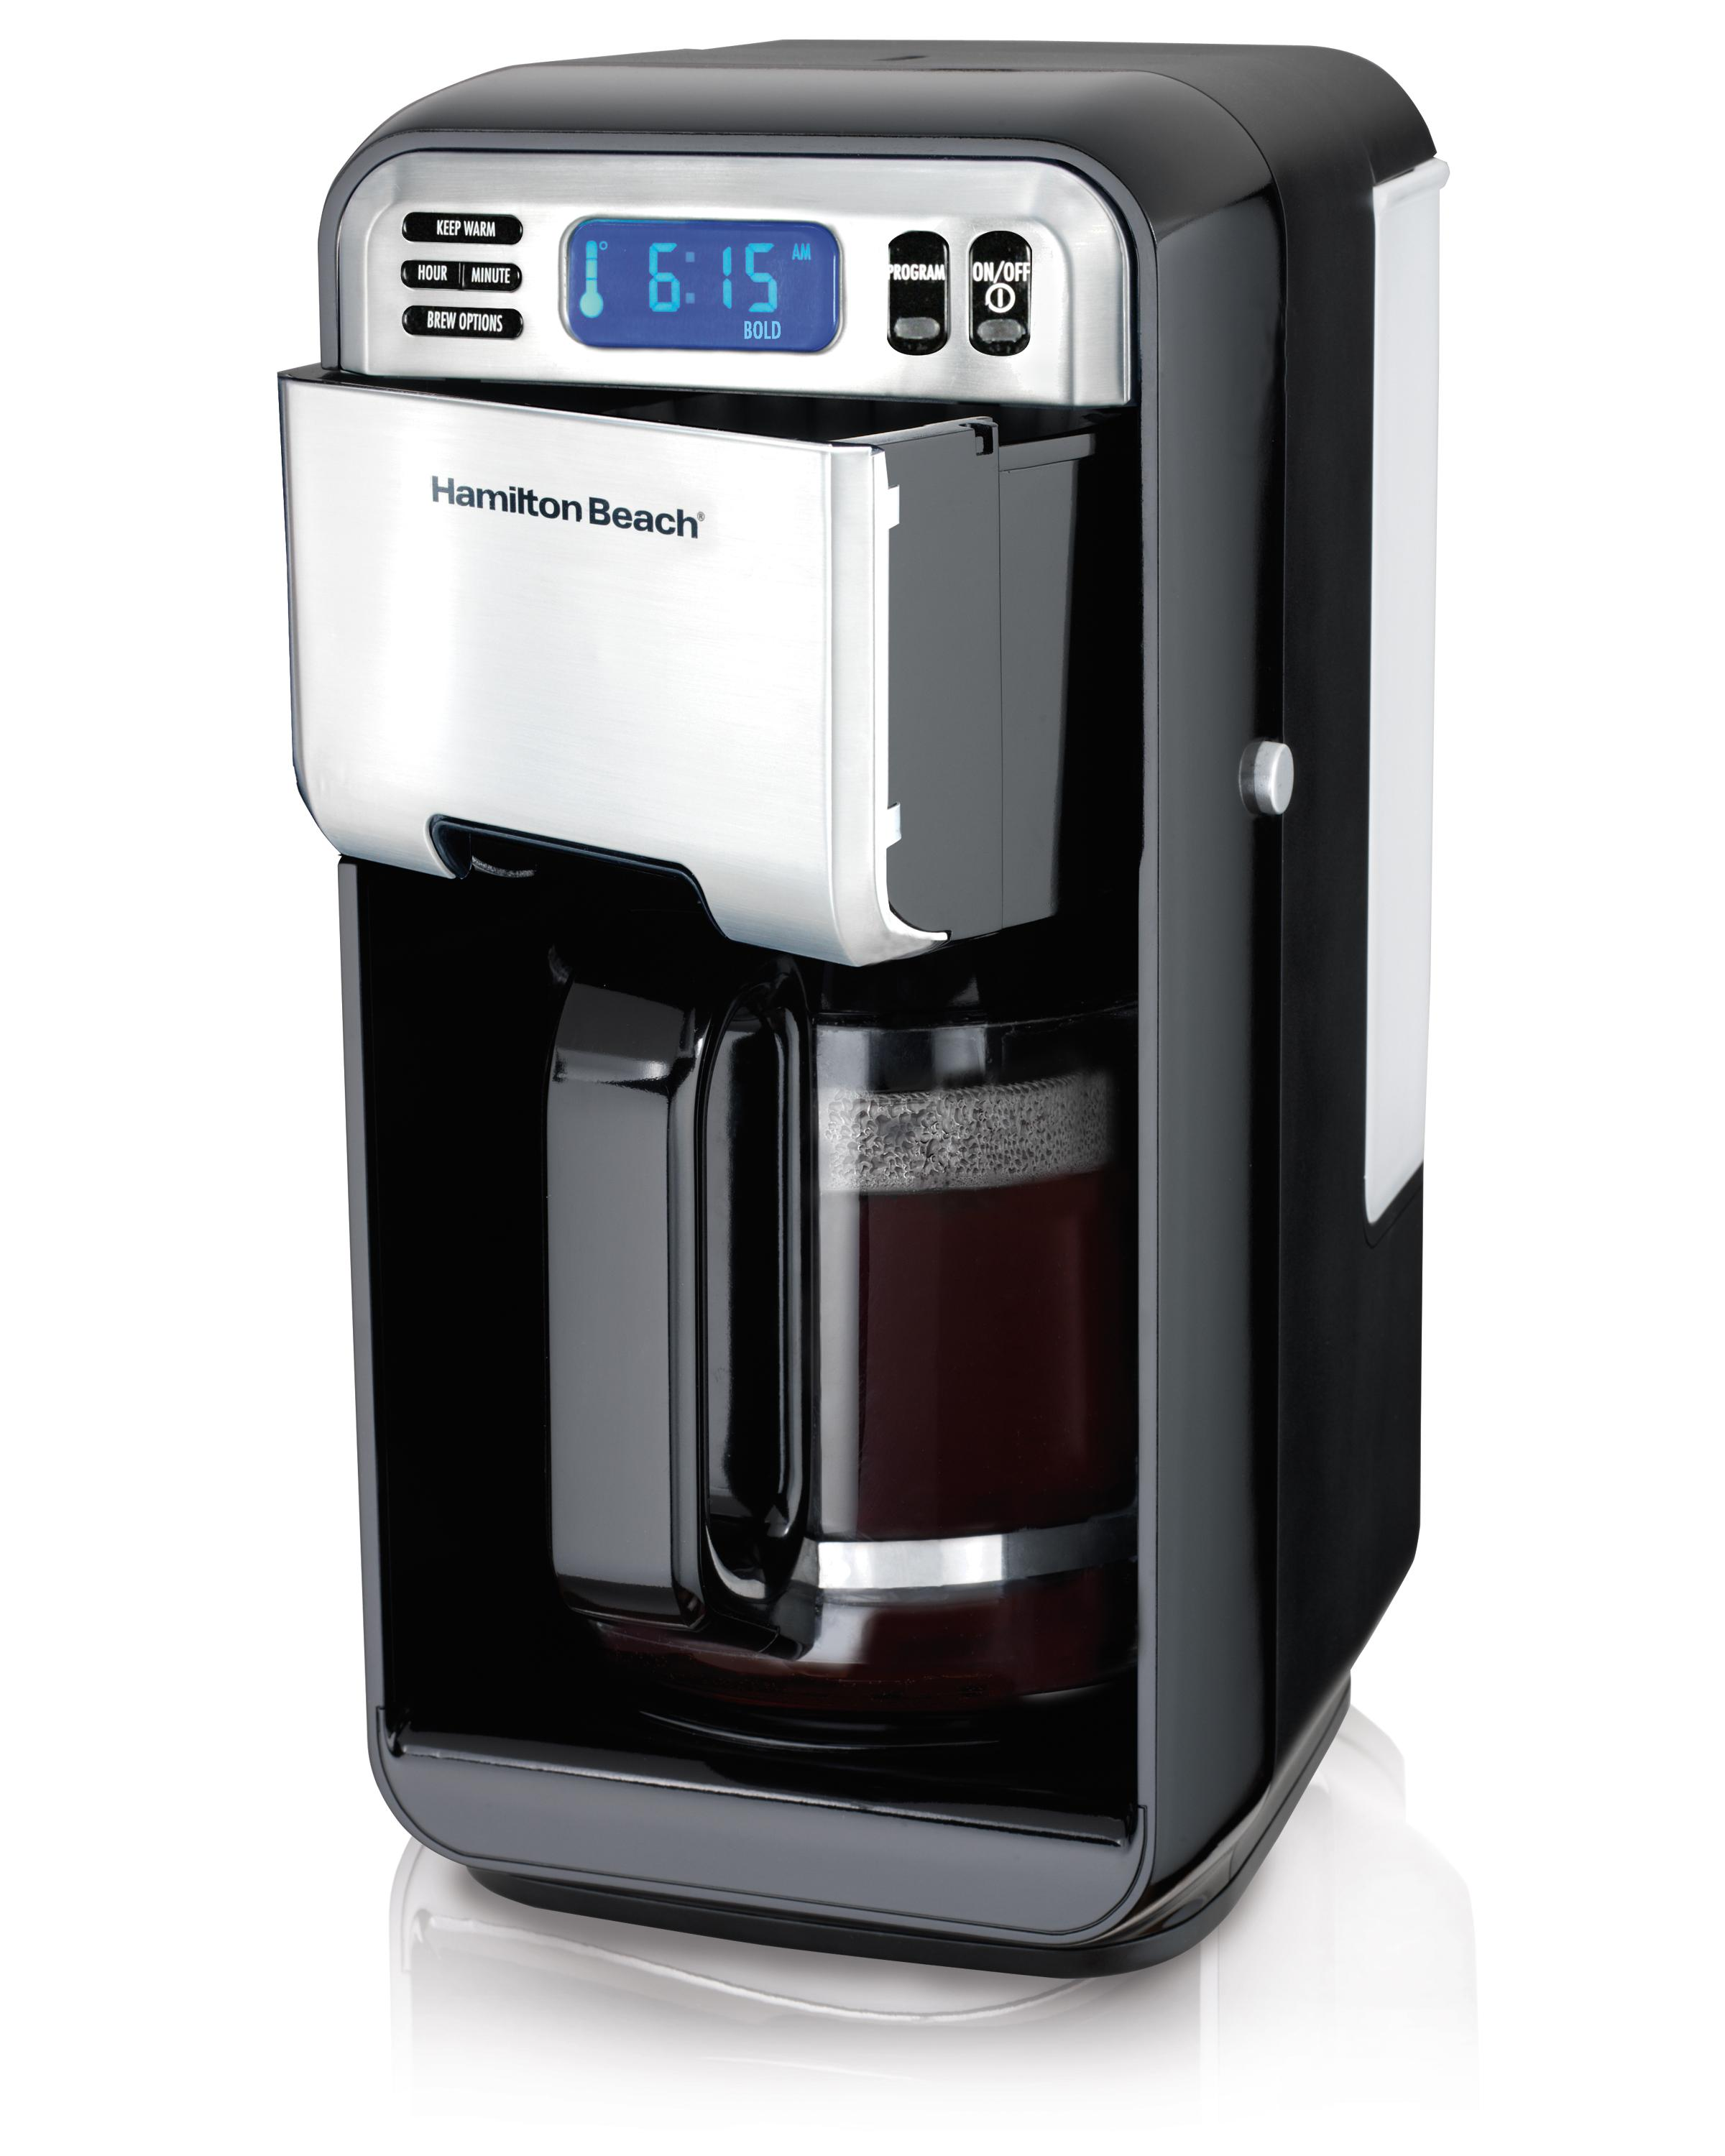 Hamilton beach 46201 12 cup digital coffeemaker stainless How to make coffee with a coffee maker